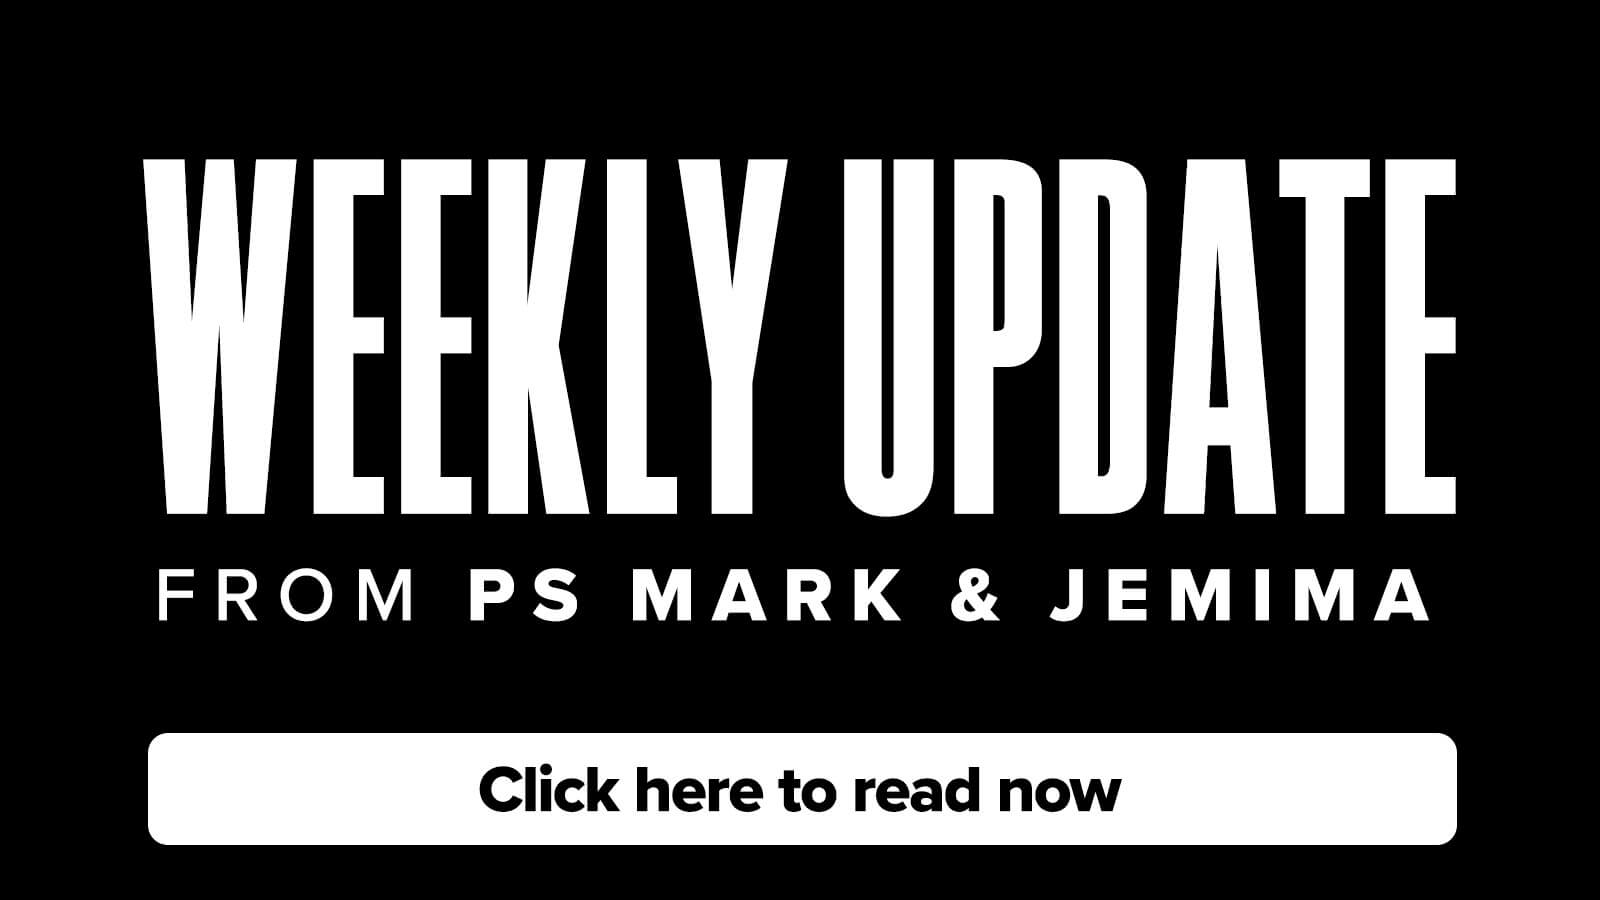 Stay in the loop with our weekly Global Update from Ps Mark & Jemima!